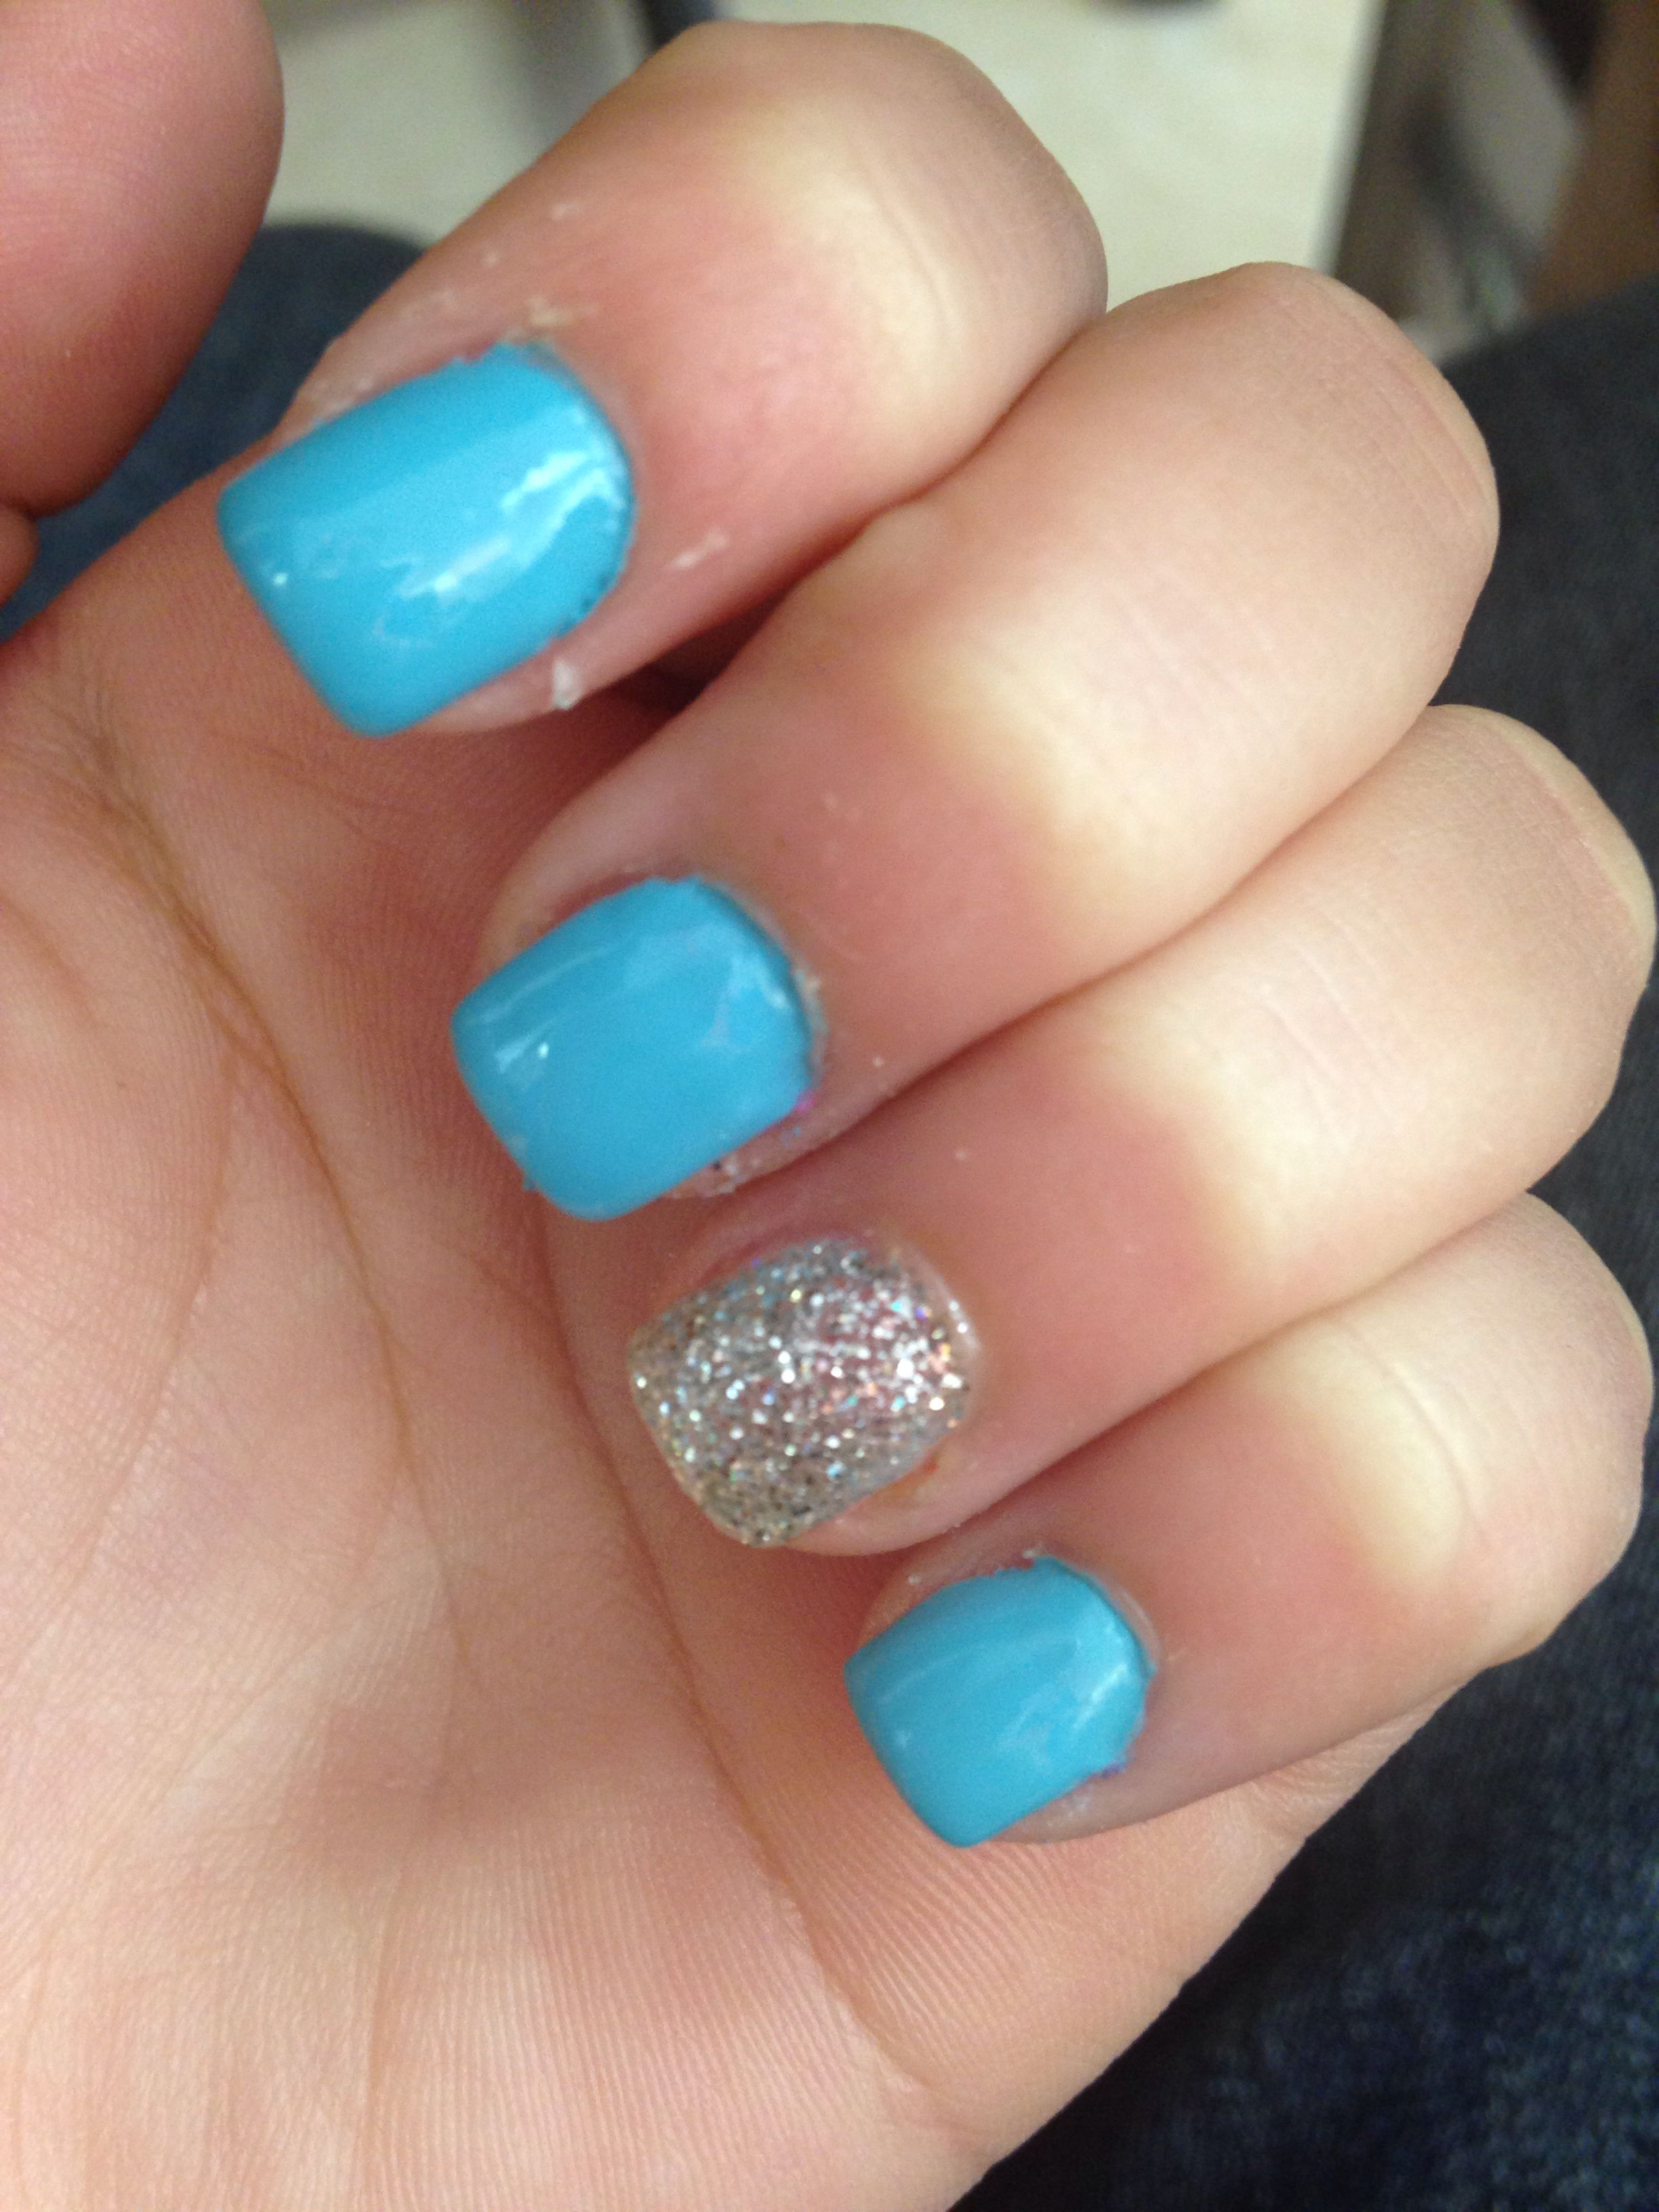 Beautiful light blue with sparkle accent acrylic nails! Love